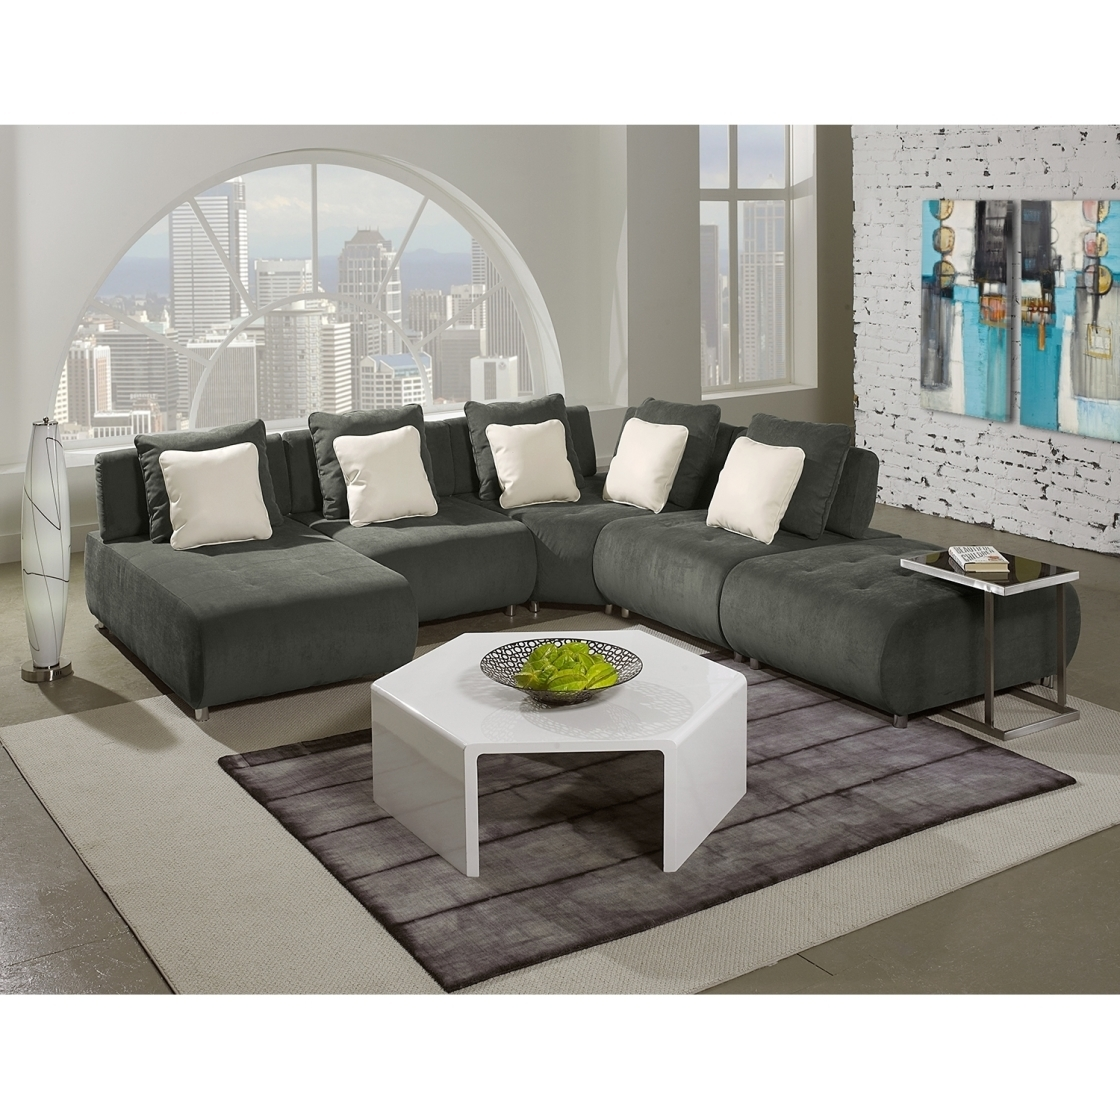 Beautiful Sleek Sectional Sofas 66 In Sectional Sofa For Small Space Within Sleek Sectional Sofas (Image 3 of 10)